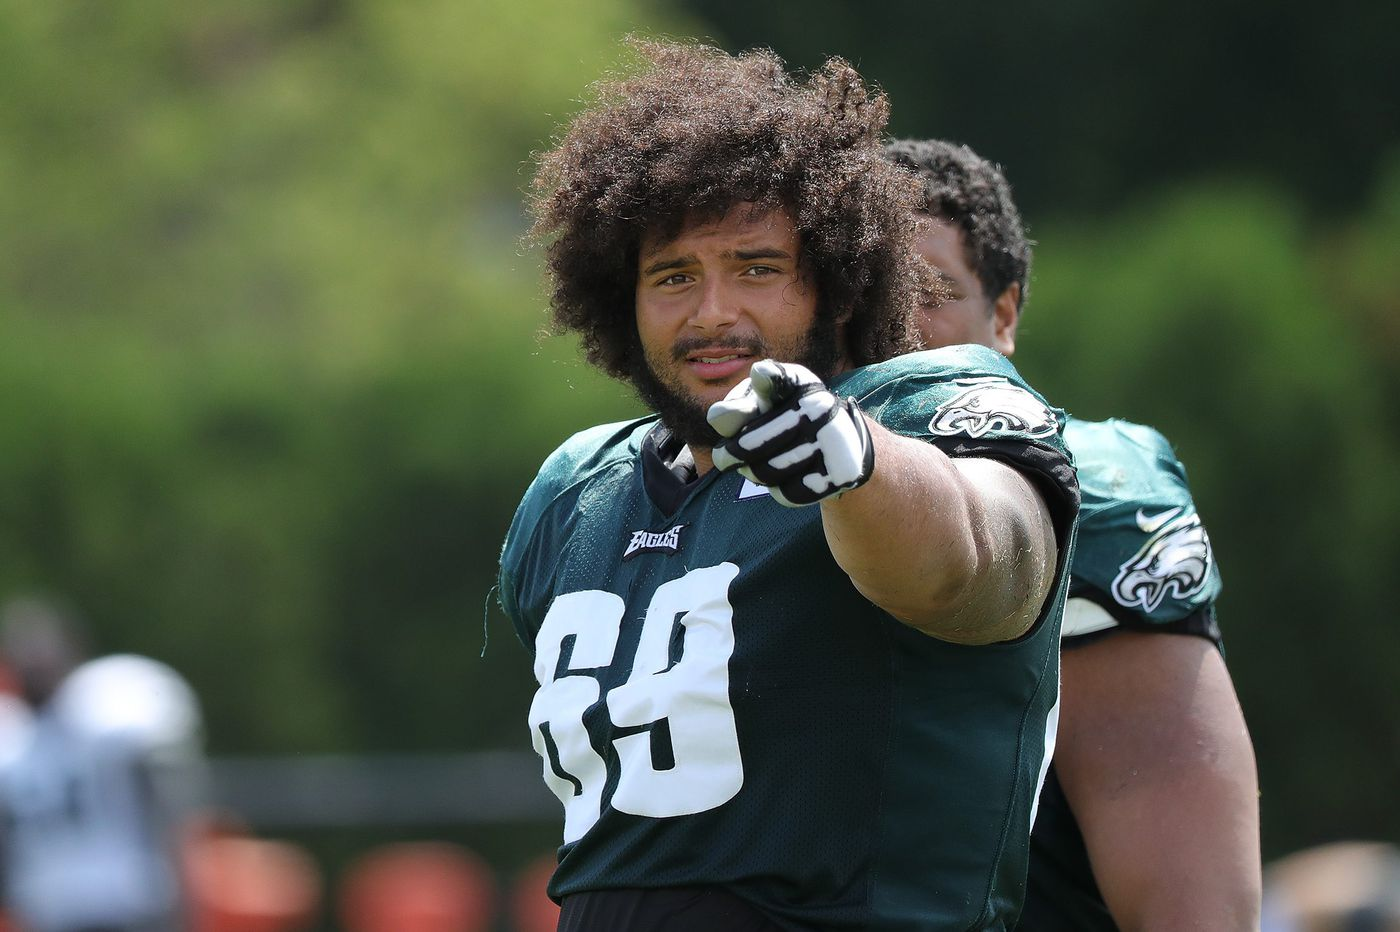 Rookie guard Matt Pryor is hands-on favorite to make the Eagles | Jeff McLane